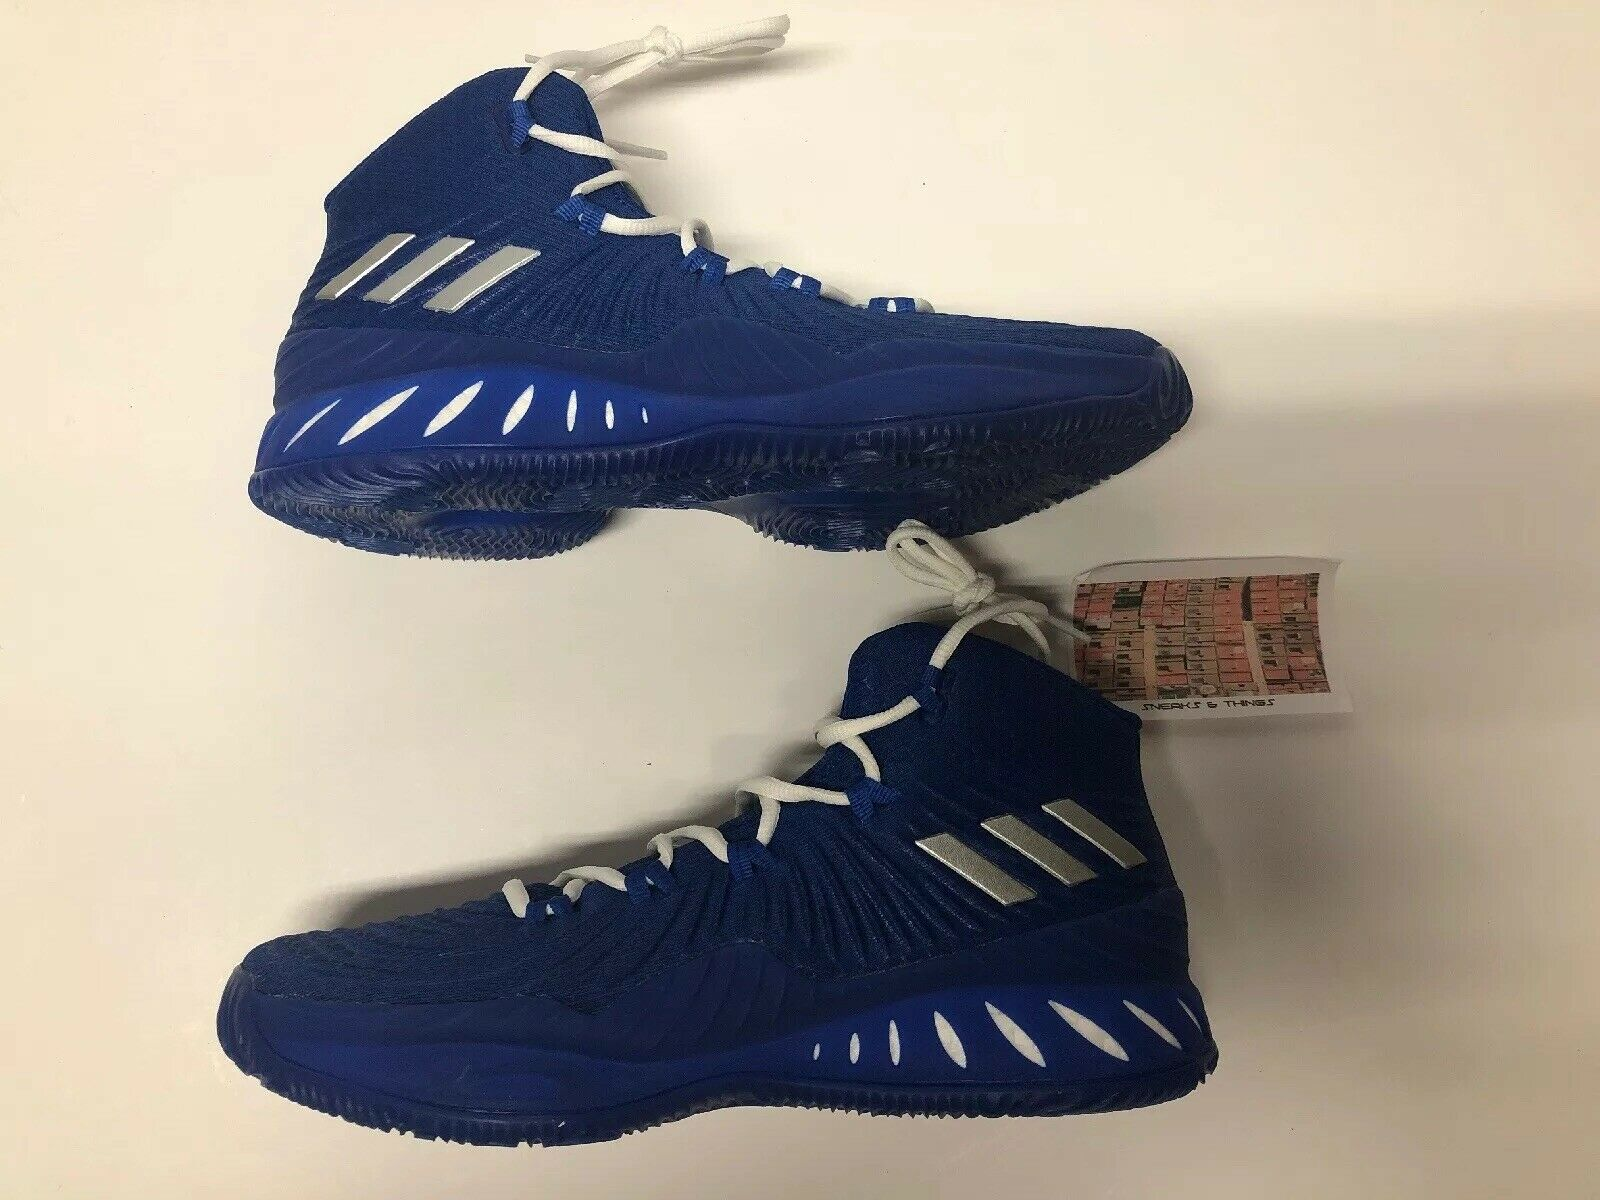 Adidas Crazy Explosive 2017 Royal bluee BY3770 New Men's Size 9 Retail  130